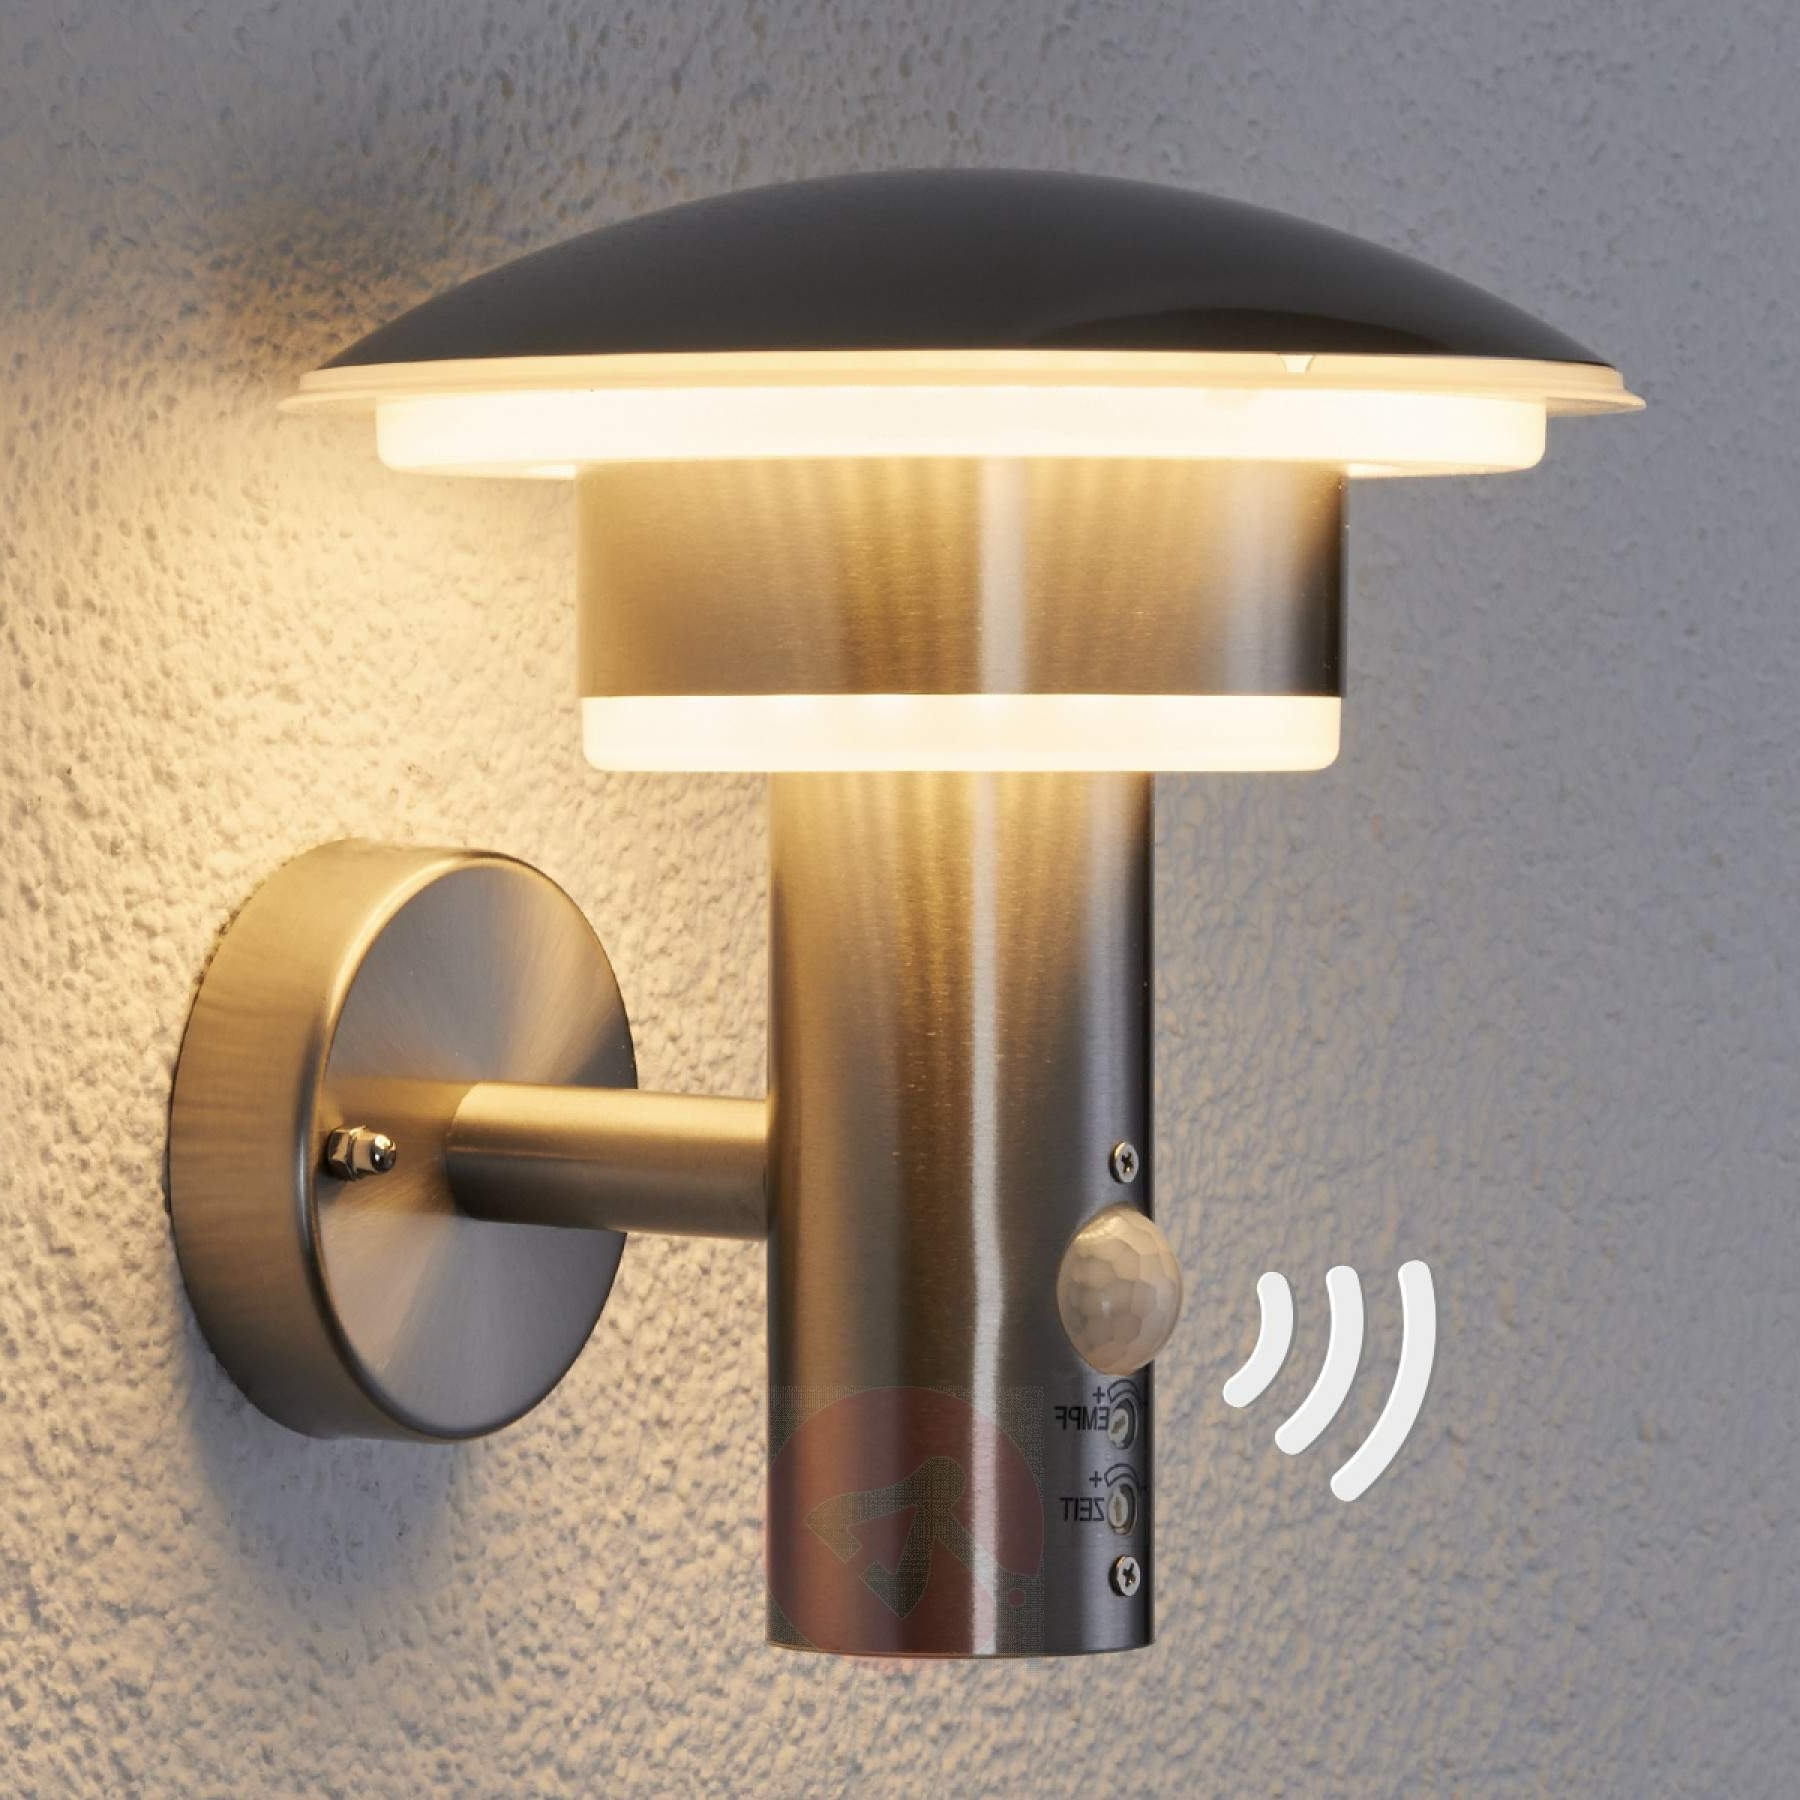 Pir Outdoor Wall Light Lillie With Leds (View 15 of 20)